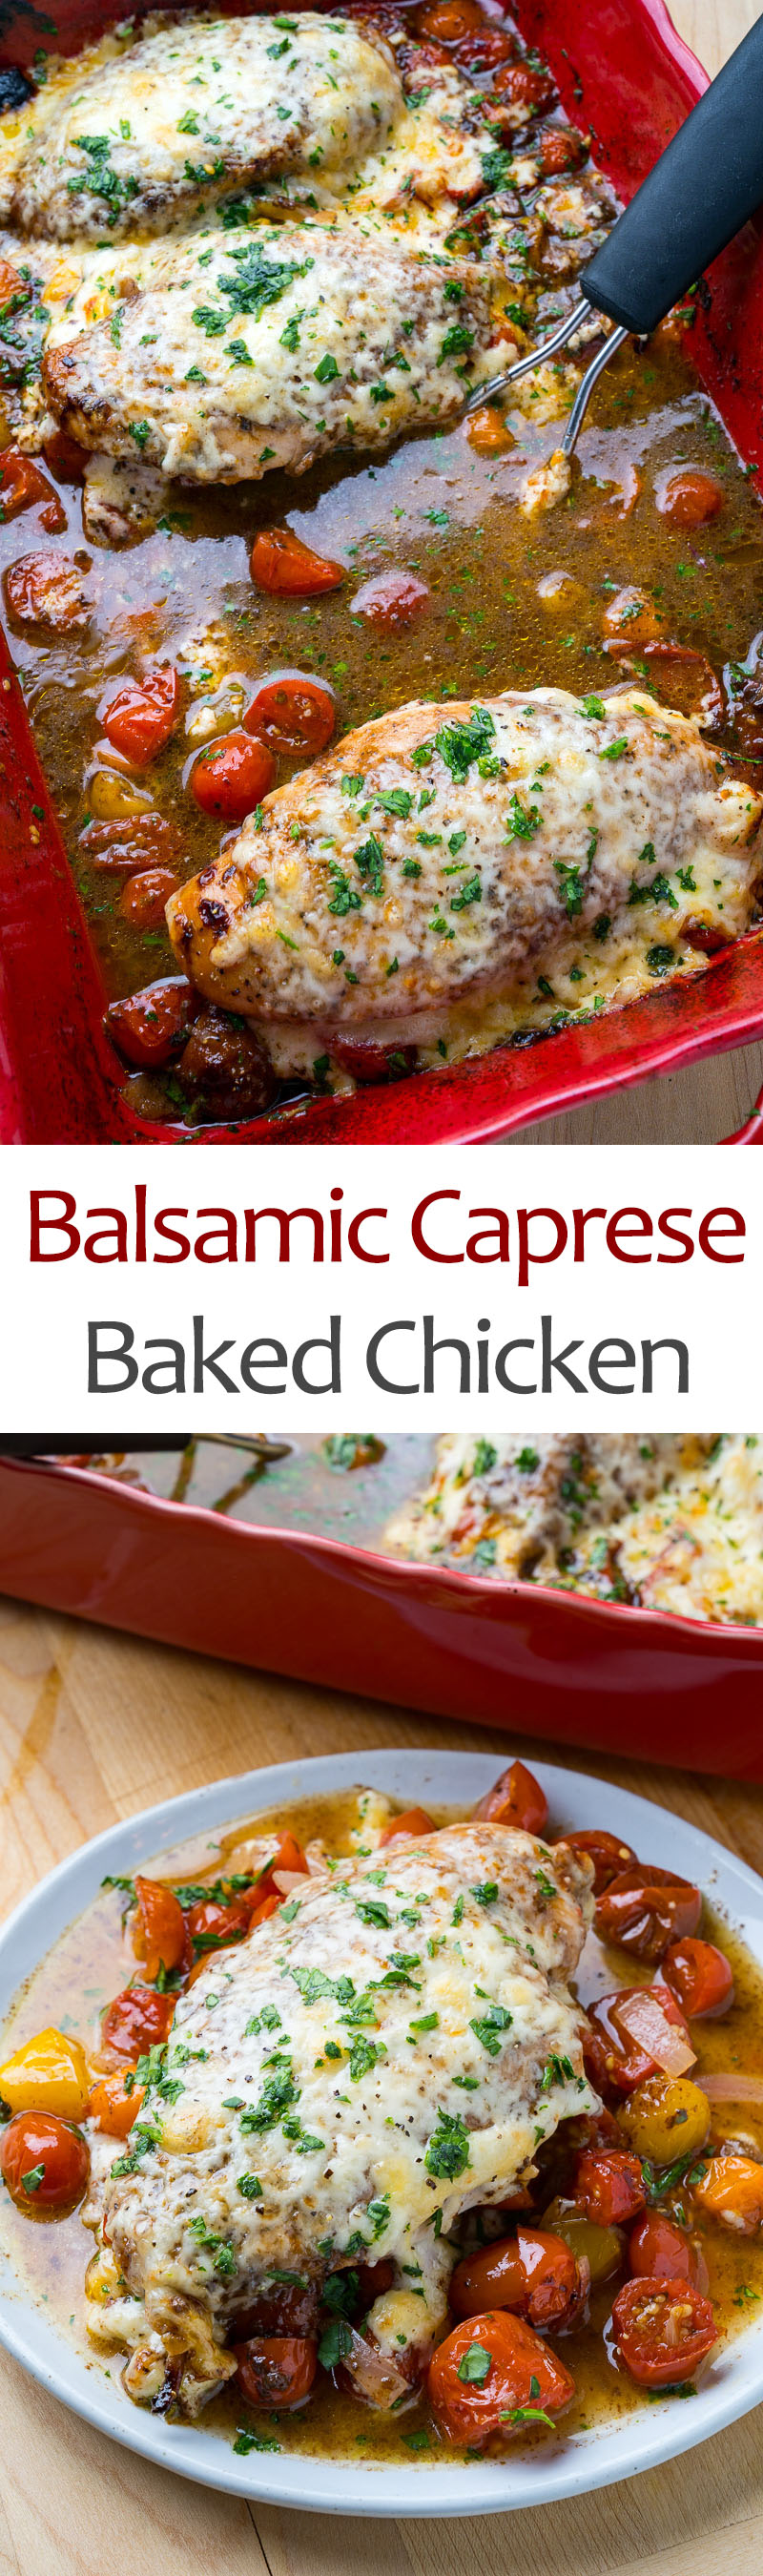 Balsamic Caprese Baked Chicken